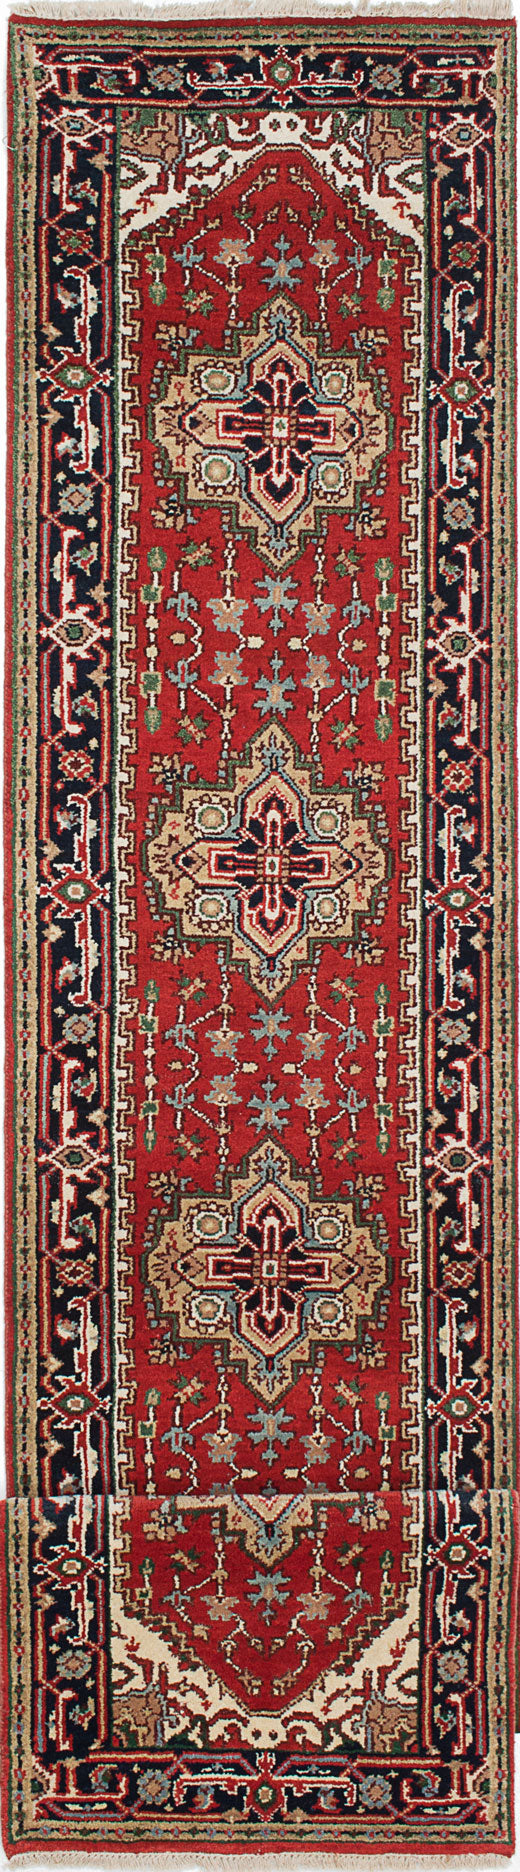 "Hand-knotted Indian Floral  Traditional Serapi-Heritage Runner rug  Dark Copper 2'6 x 19'3"" """